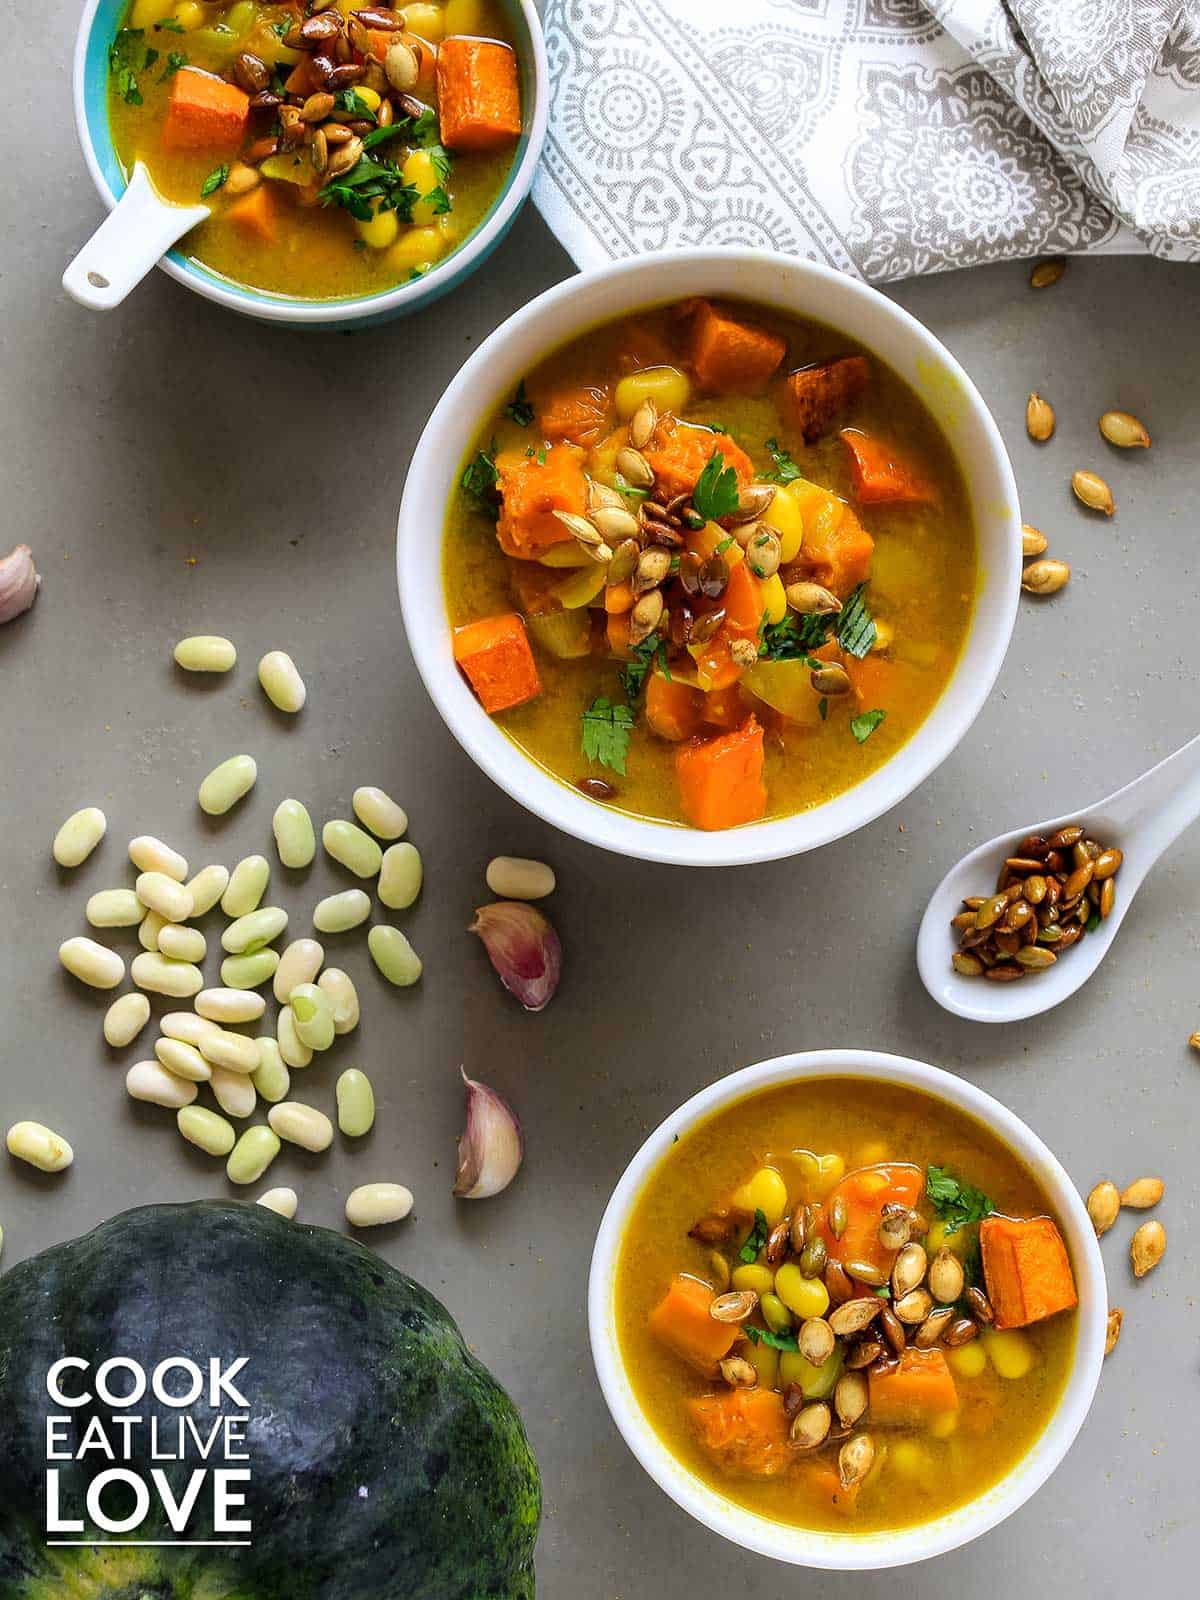 Three bowls of healthy pumpkin soup on gray background. White beans and toasted pumpkin seeds around the bowls.